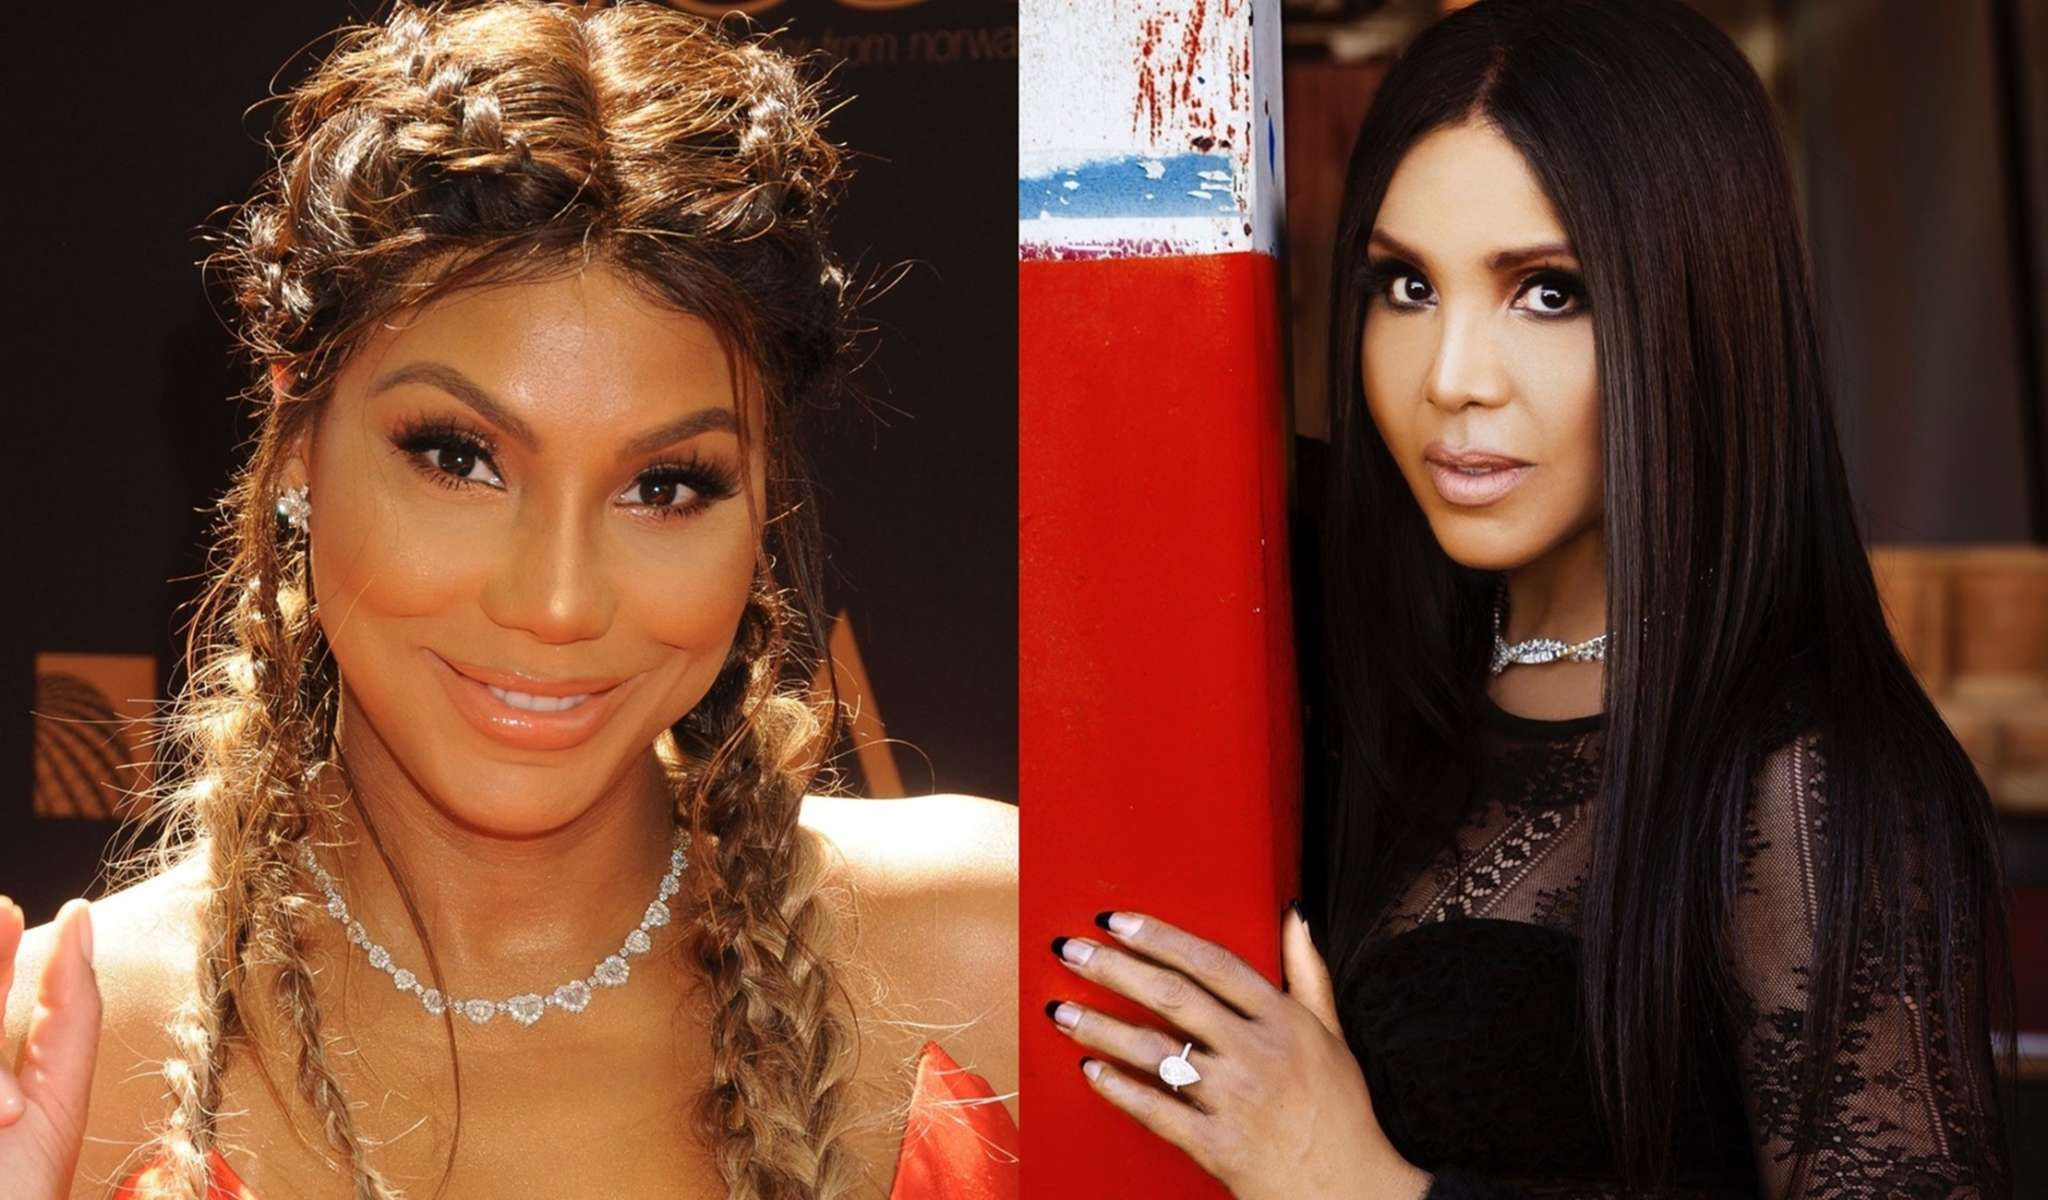 Tamar Braxton Shows Love To Her Fans After They Sent Her This Video